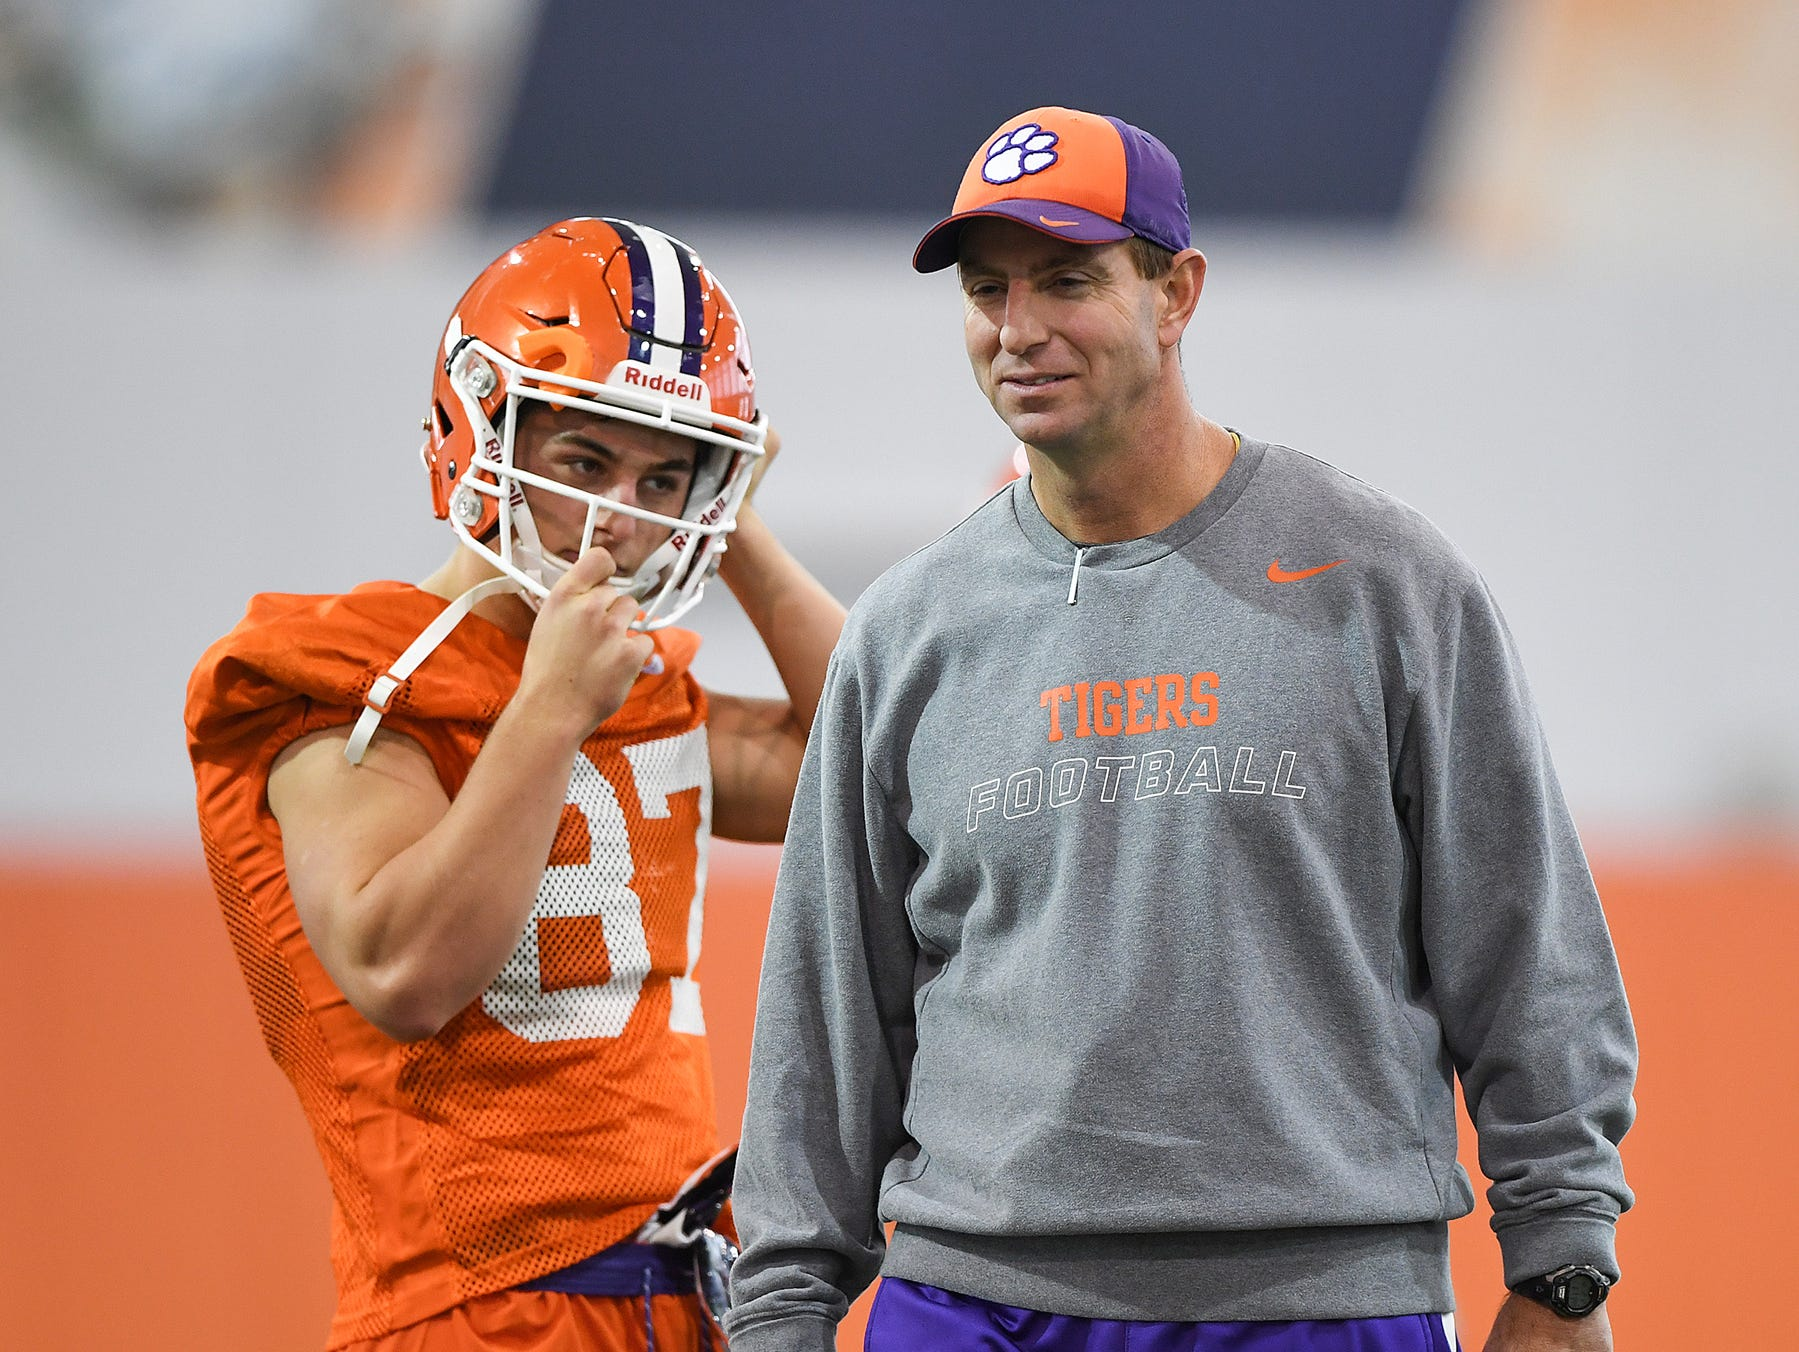 Clemson head coach Dabo Swinney during the Tigers Cotton Bowl practice on Wednesday, December 12, 2018.